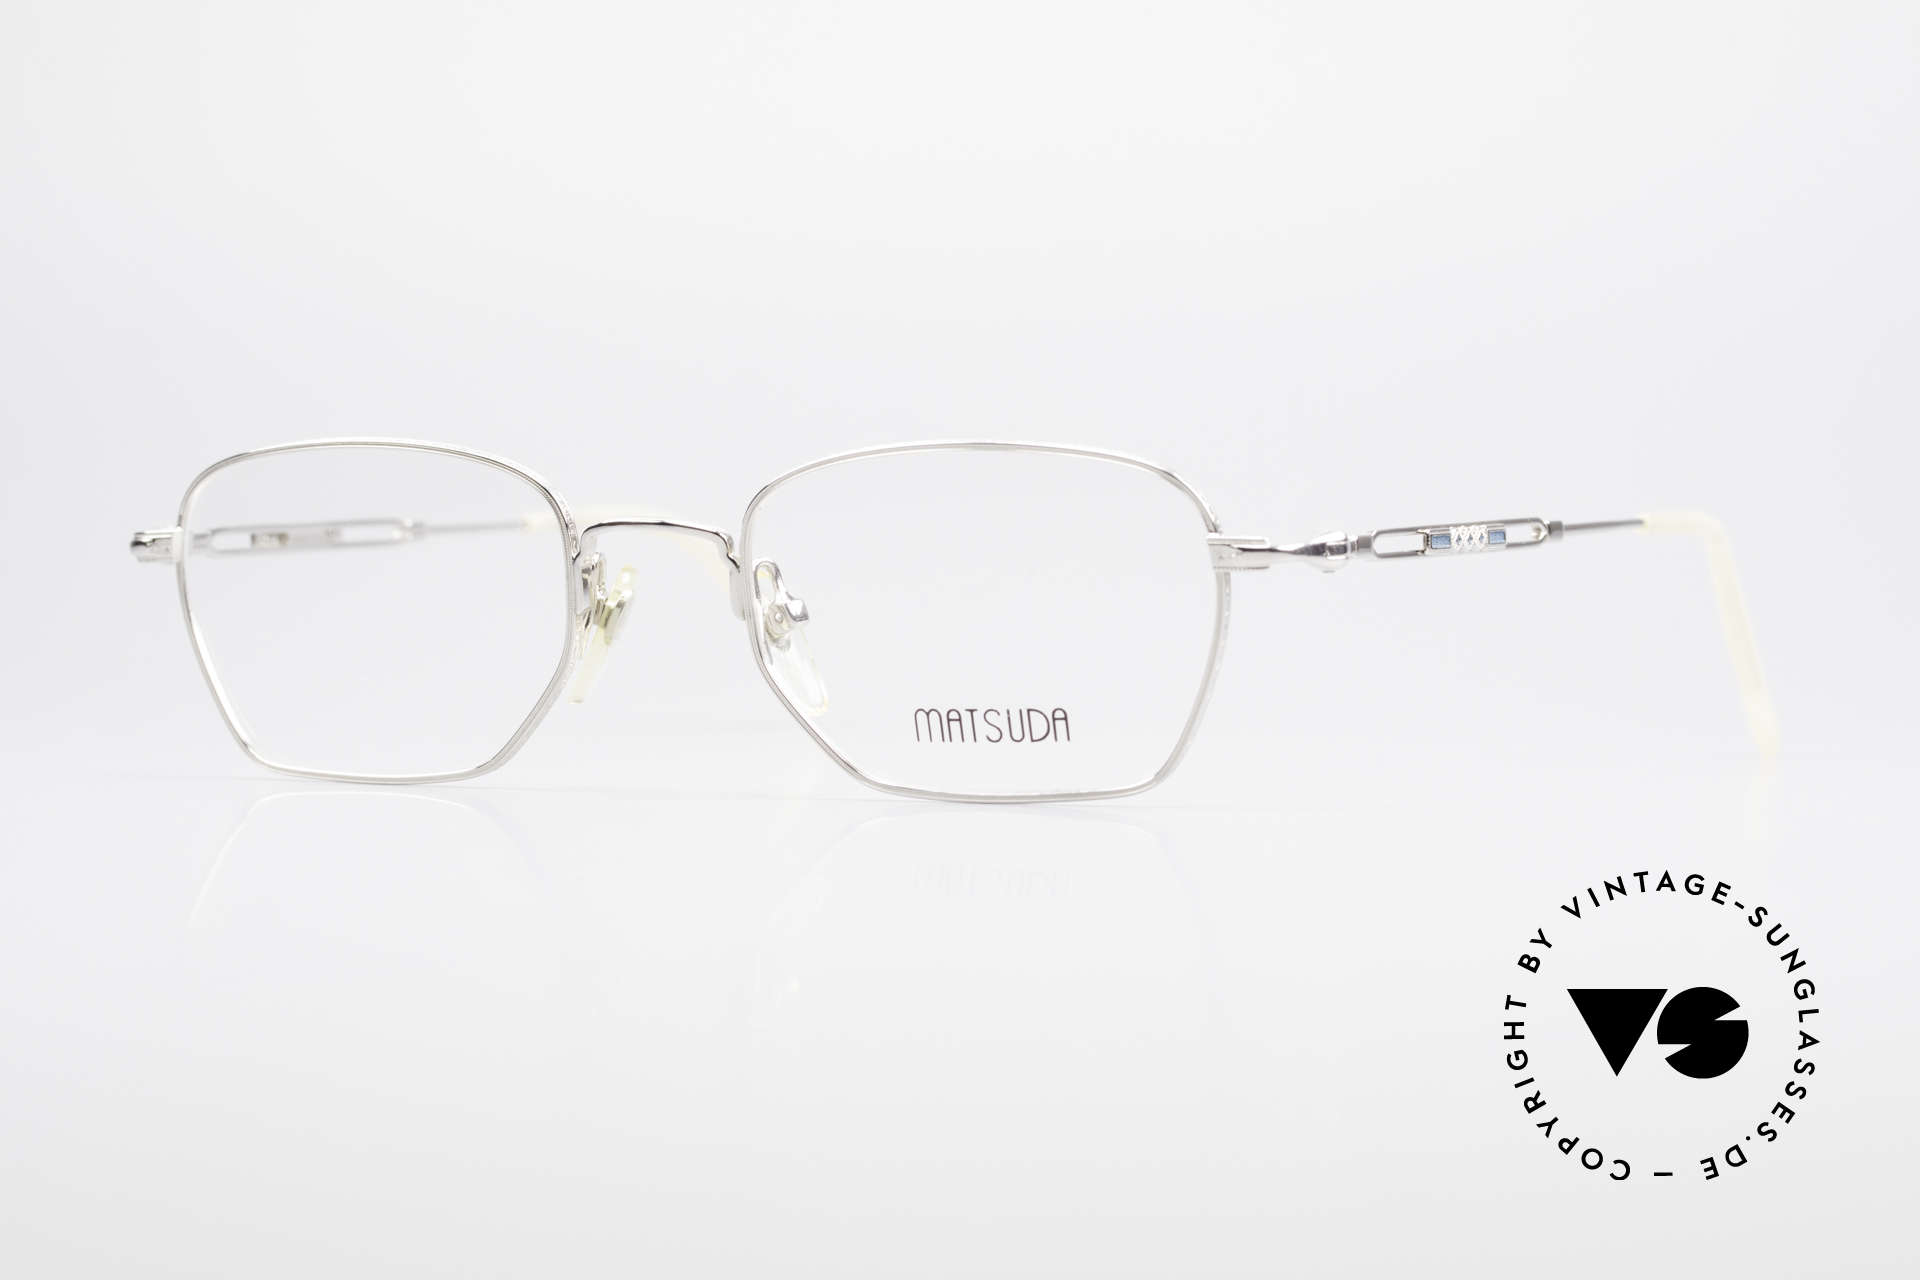 Matsuda 2882 Vintage Eyeglasses Square, vintage Matsuda designer eyeglasses from the 90s, Made for Men